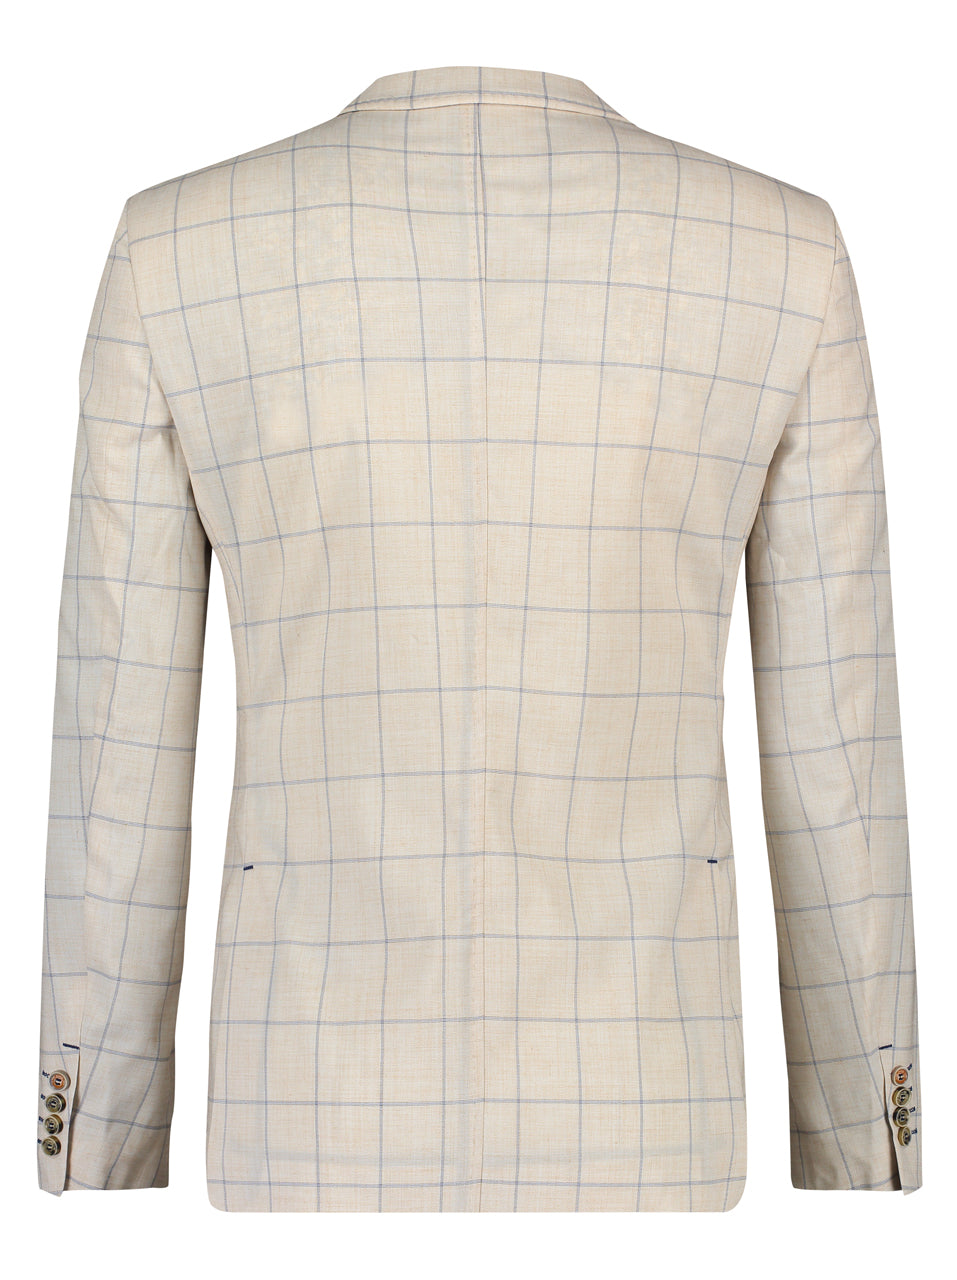 A Fish Named Fred Jacket in Beige Window Pane Check - MitchellMcCabe